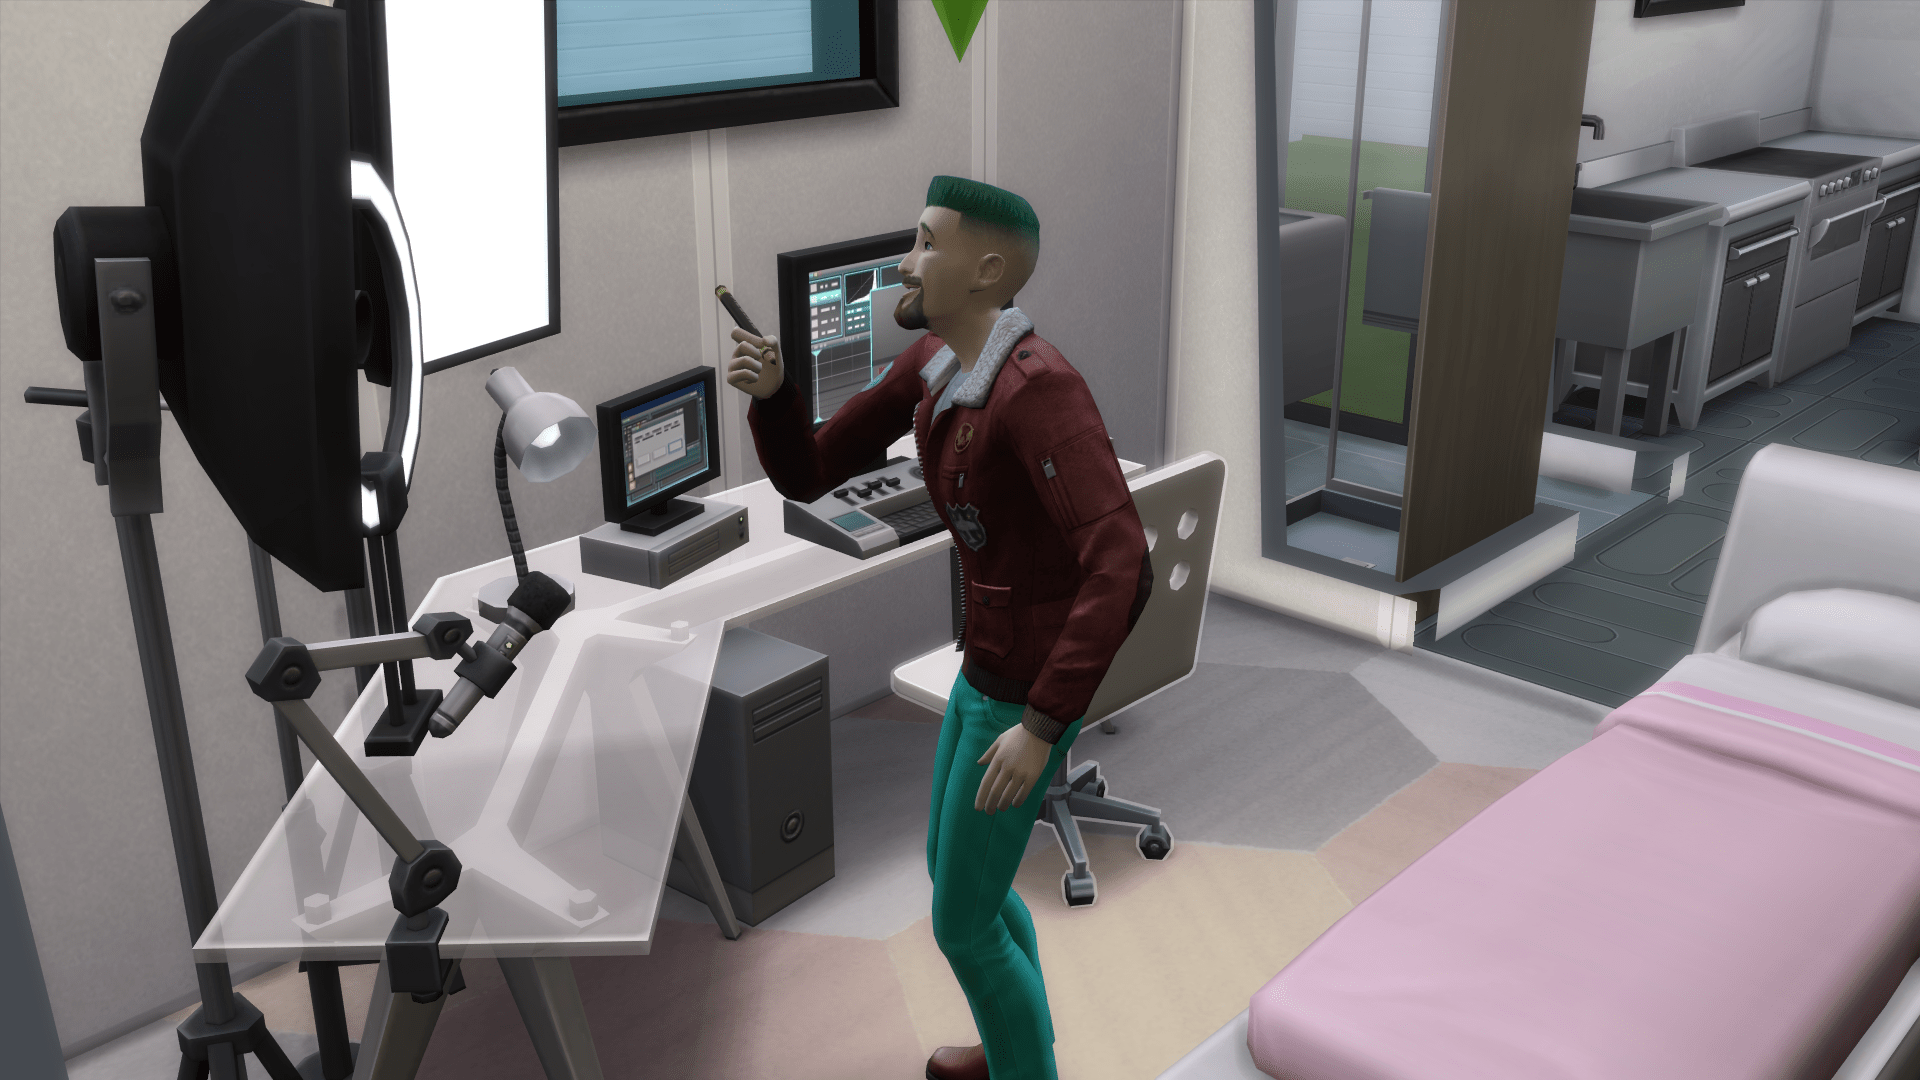 The Sims 4 Spring 2020 Update - The Sim Architect